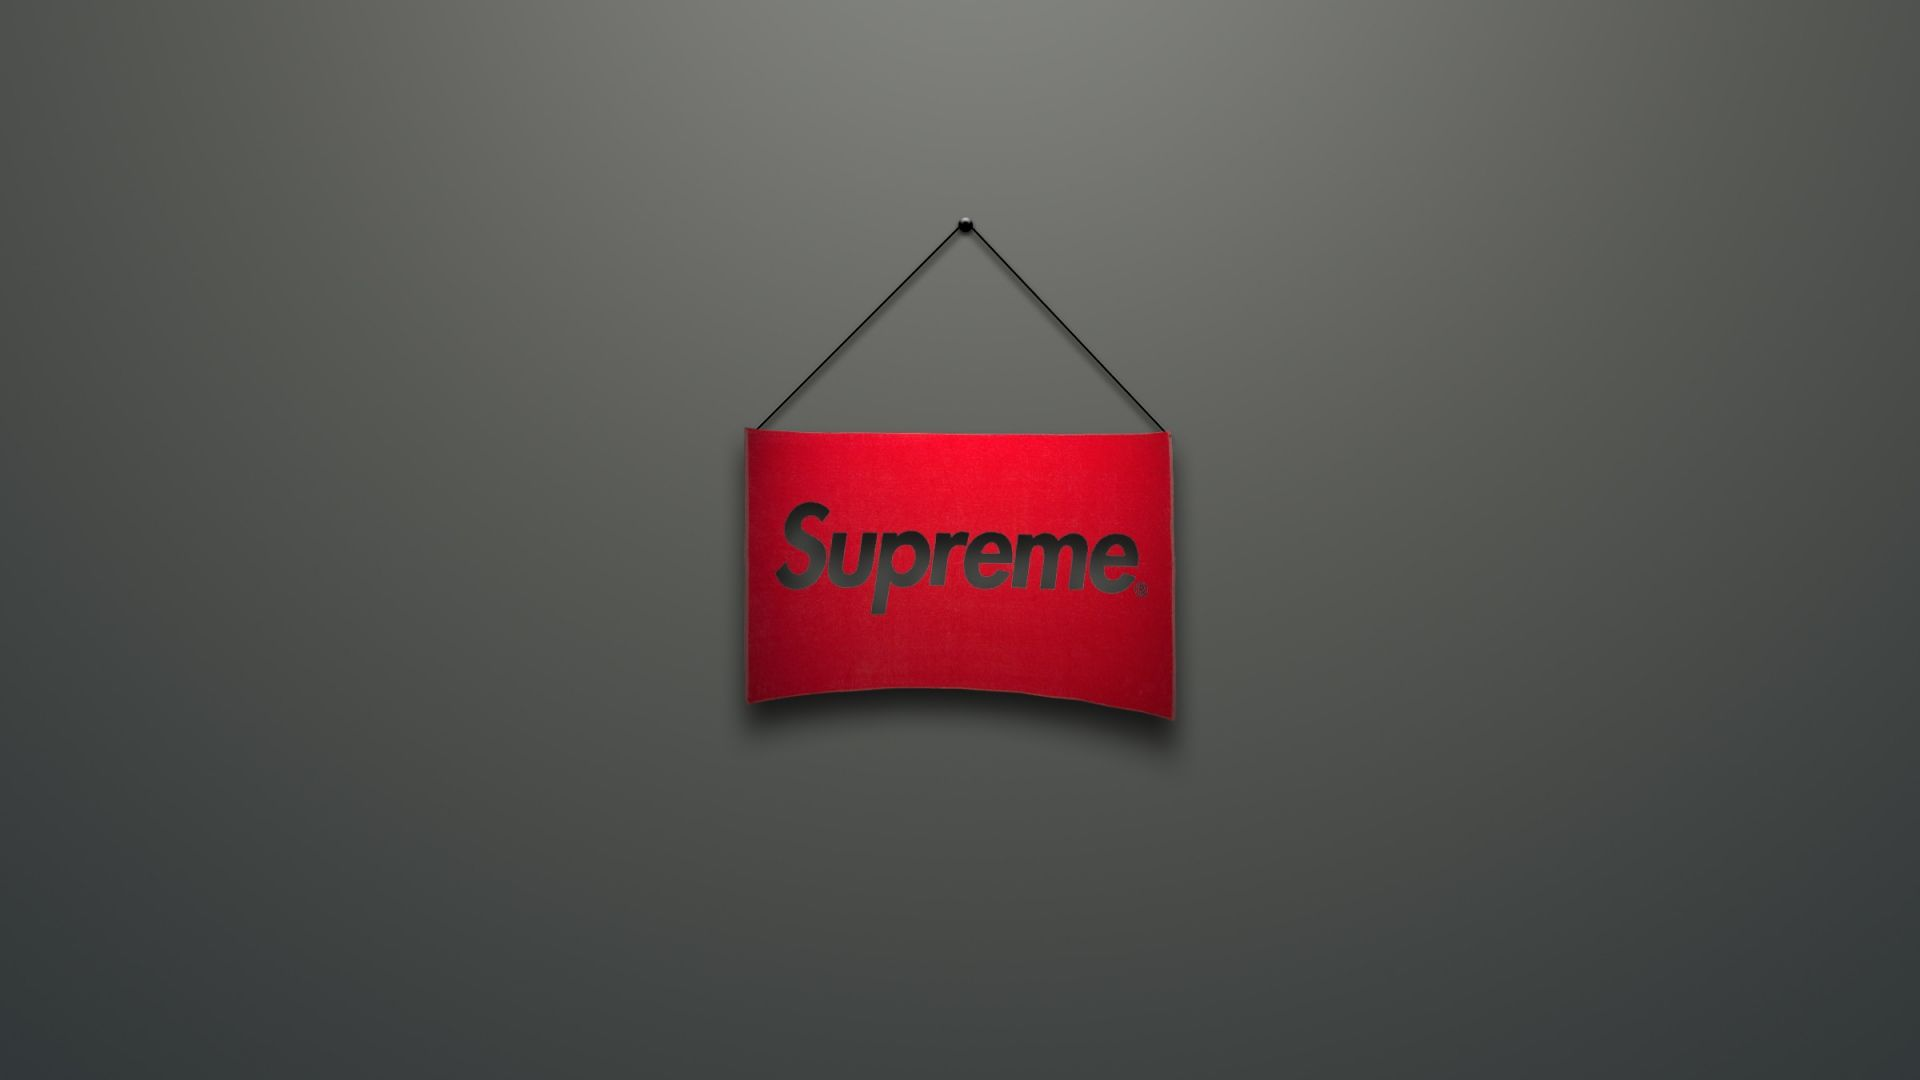 Supreme HD Wallpaper Picture Image 1920x1080